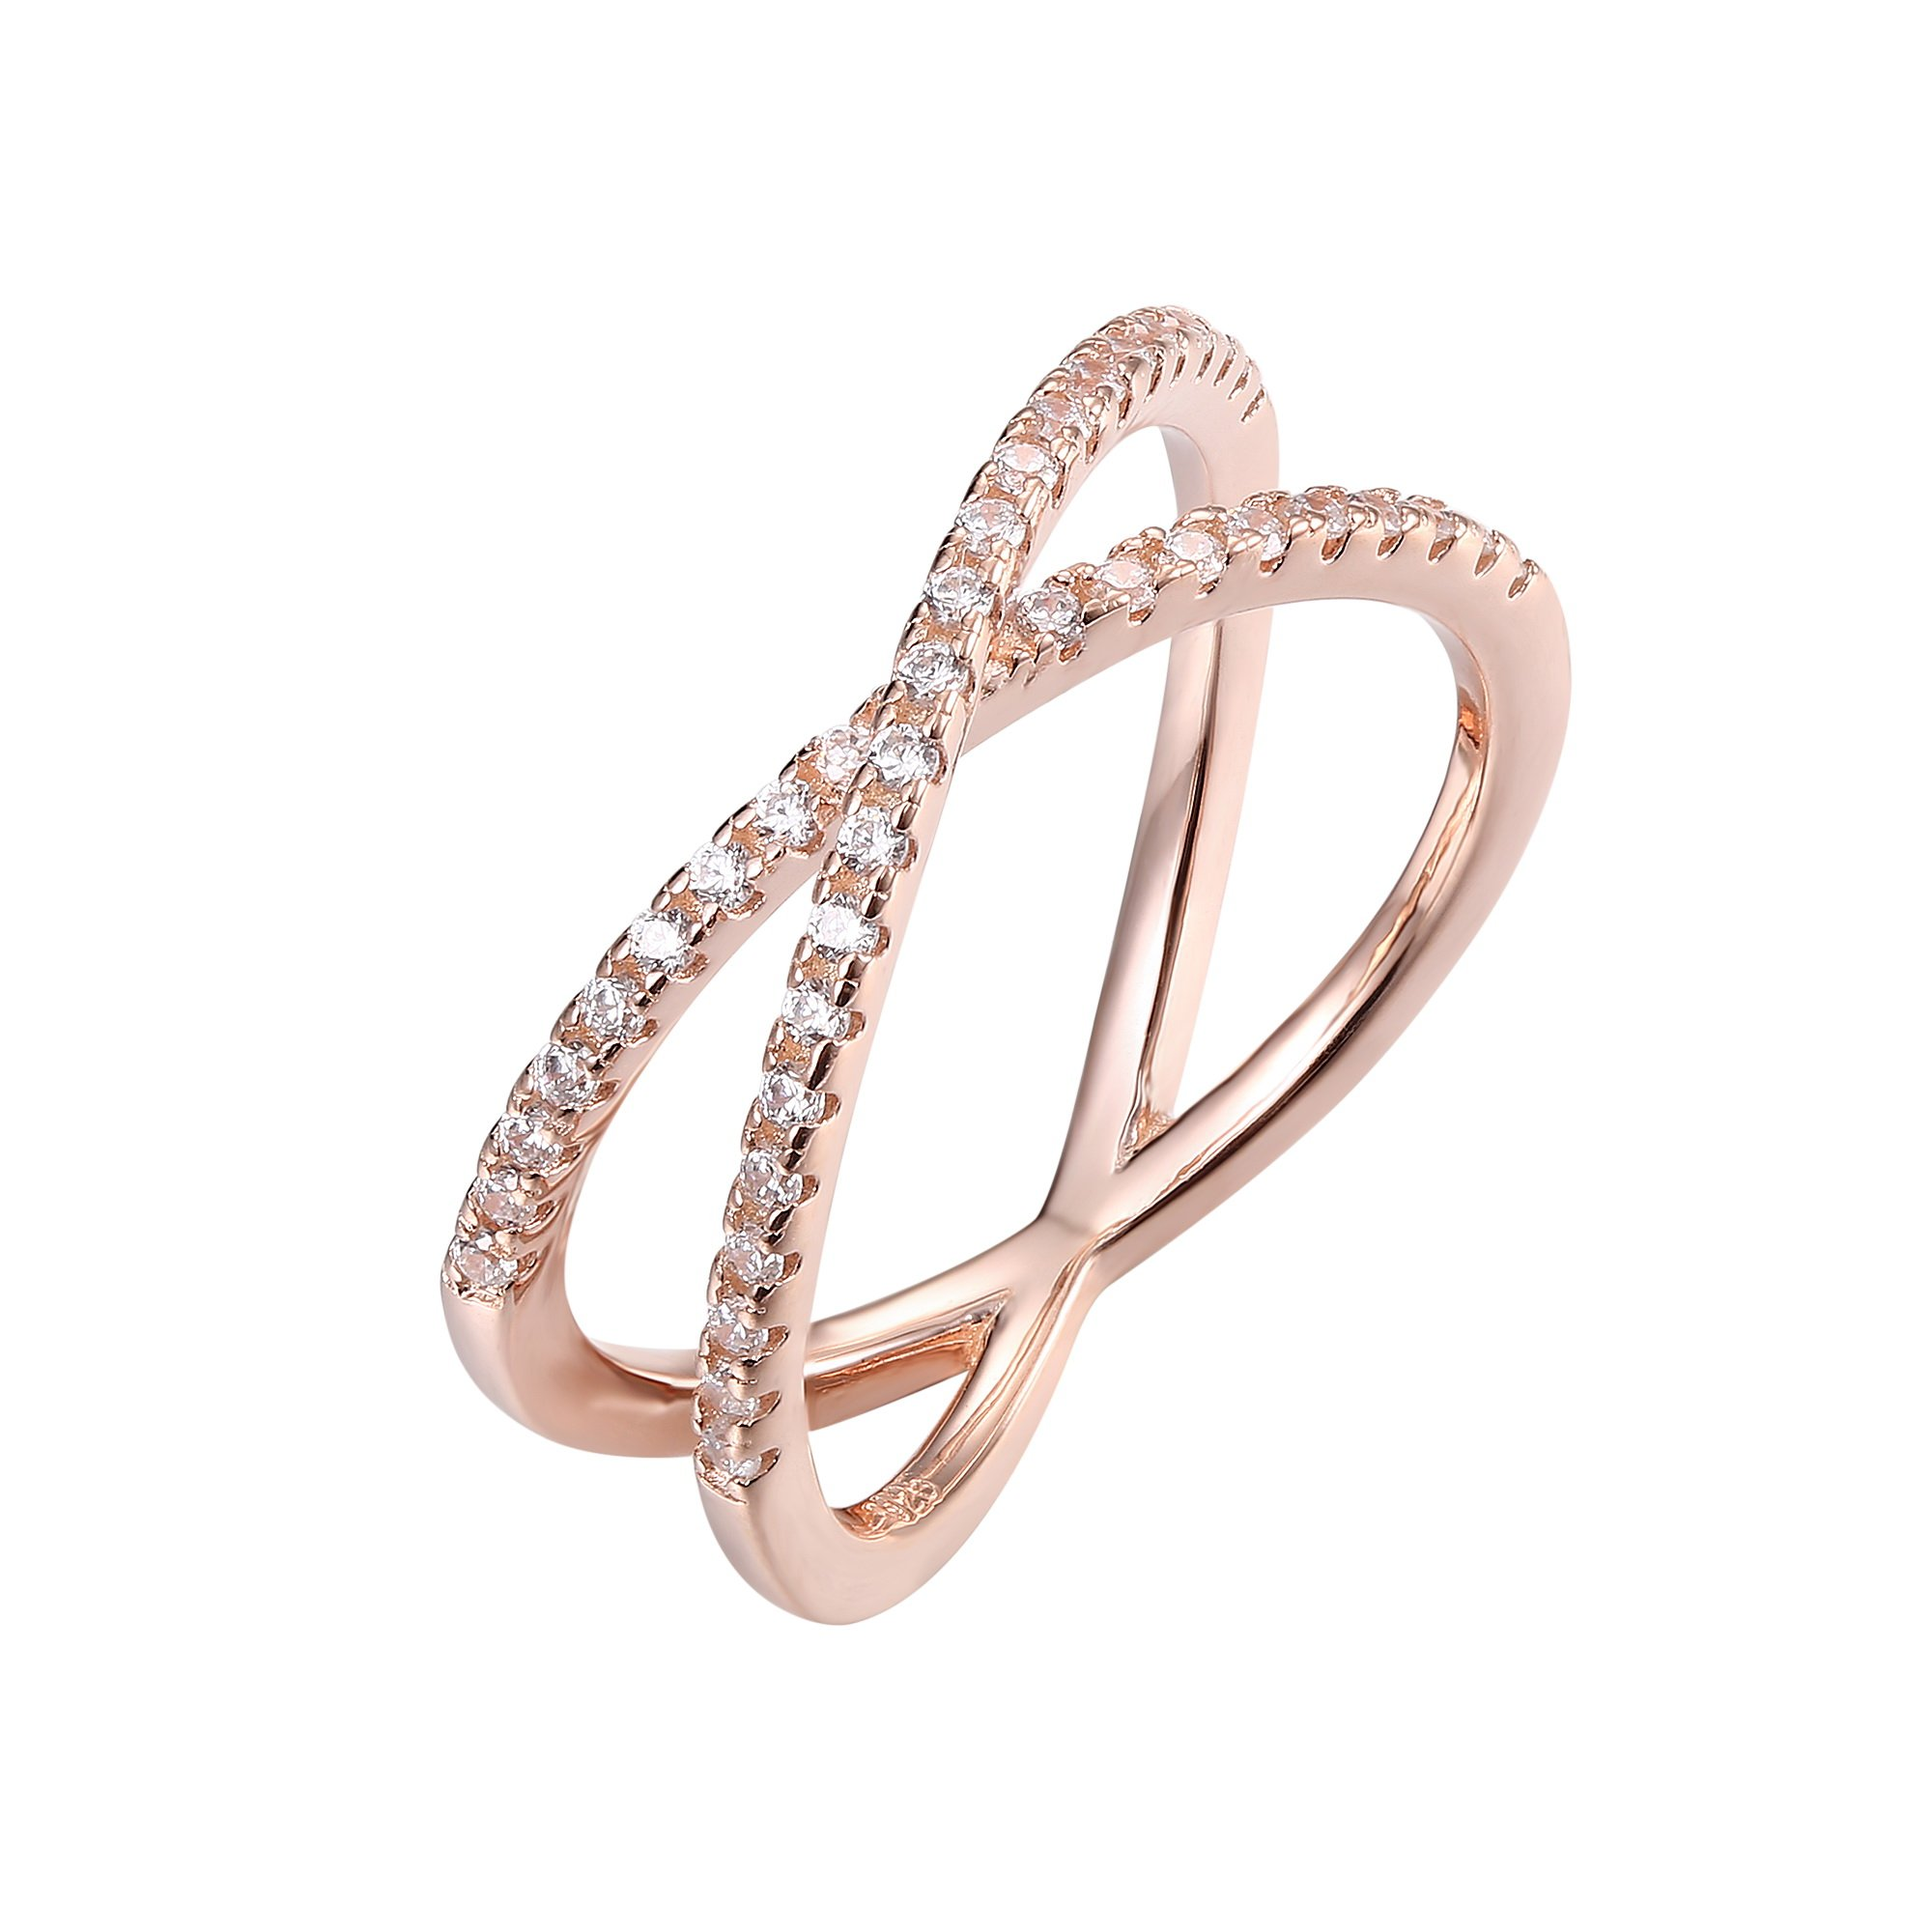 PAVOI 14K Gold Plated X Ring CZ Simulated Diamond Criss Cross Ring (9, Rose)